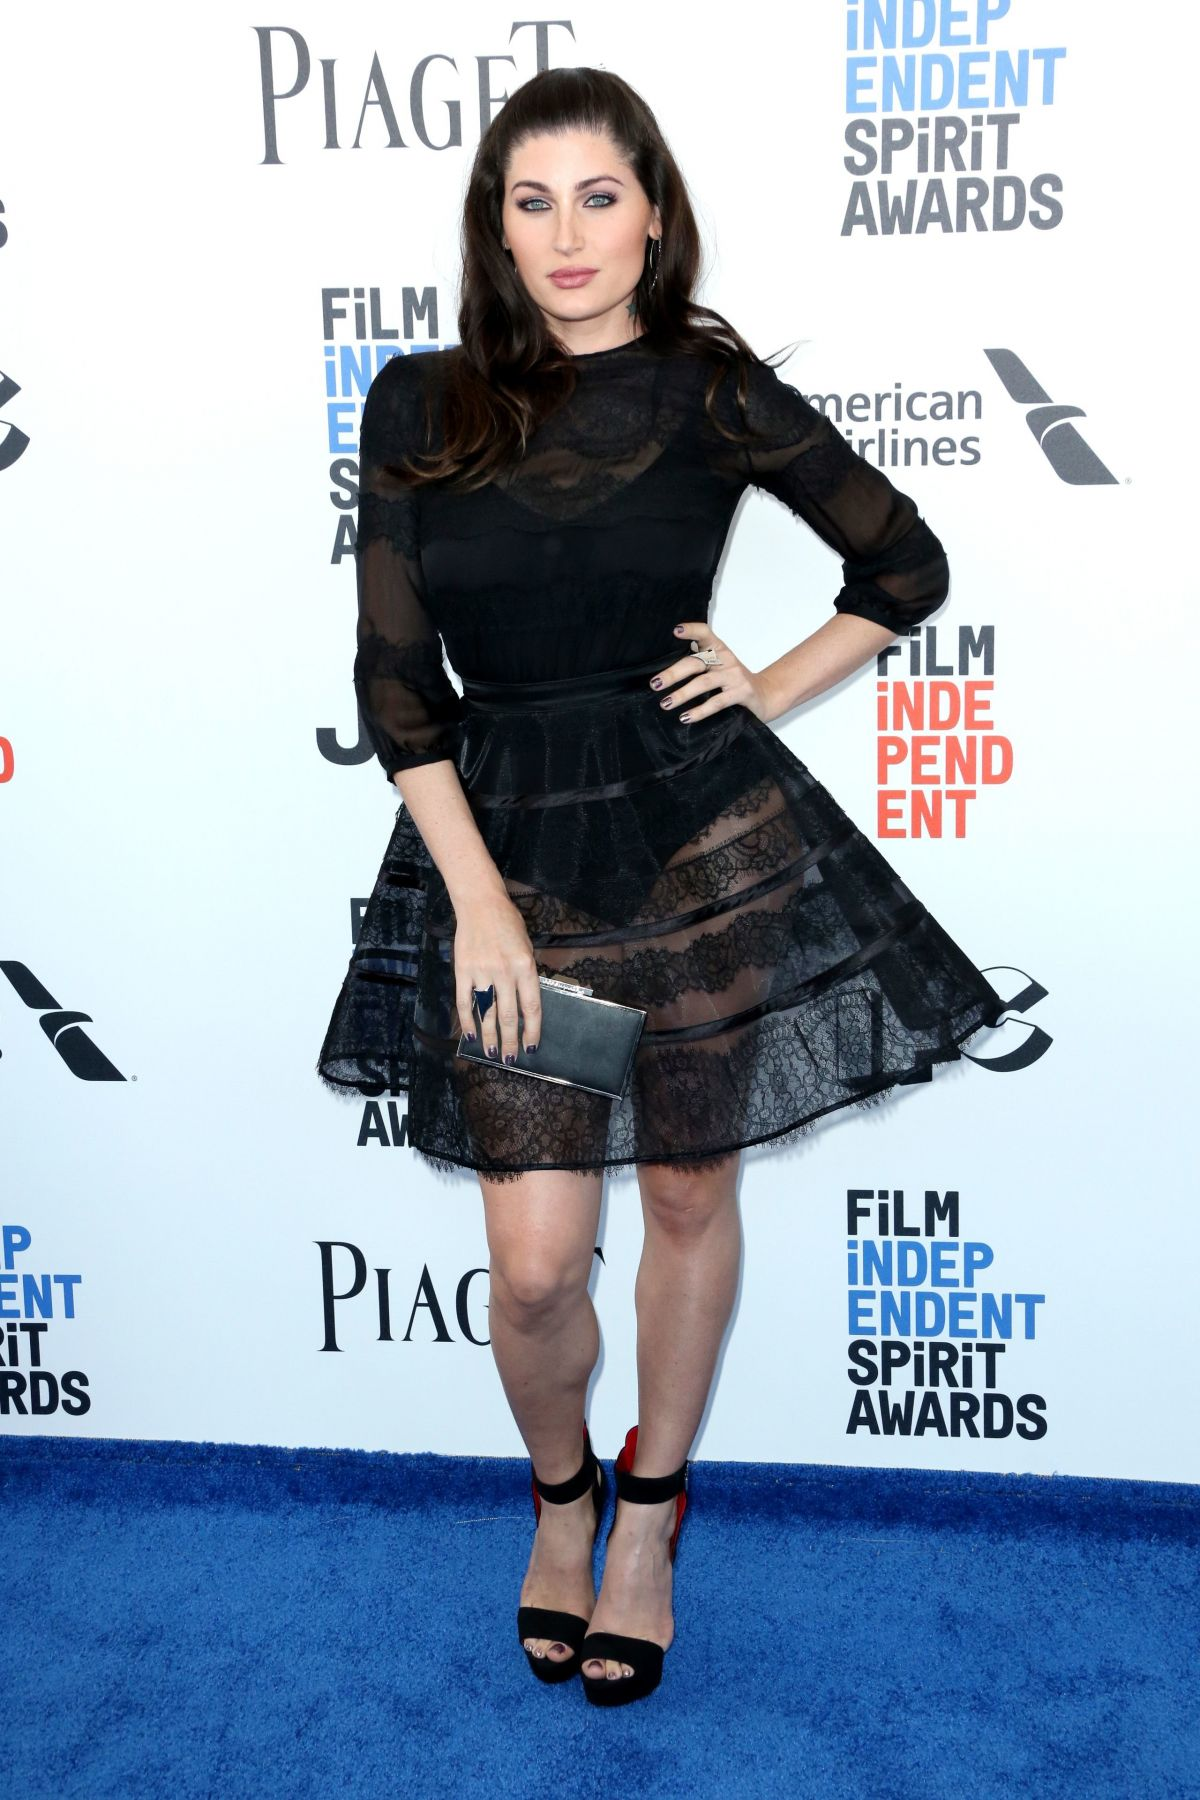 TRACE LYSETTE at 2017 Film Independent Spirit Awards in Santa Monica 02/25/2017